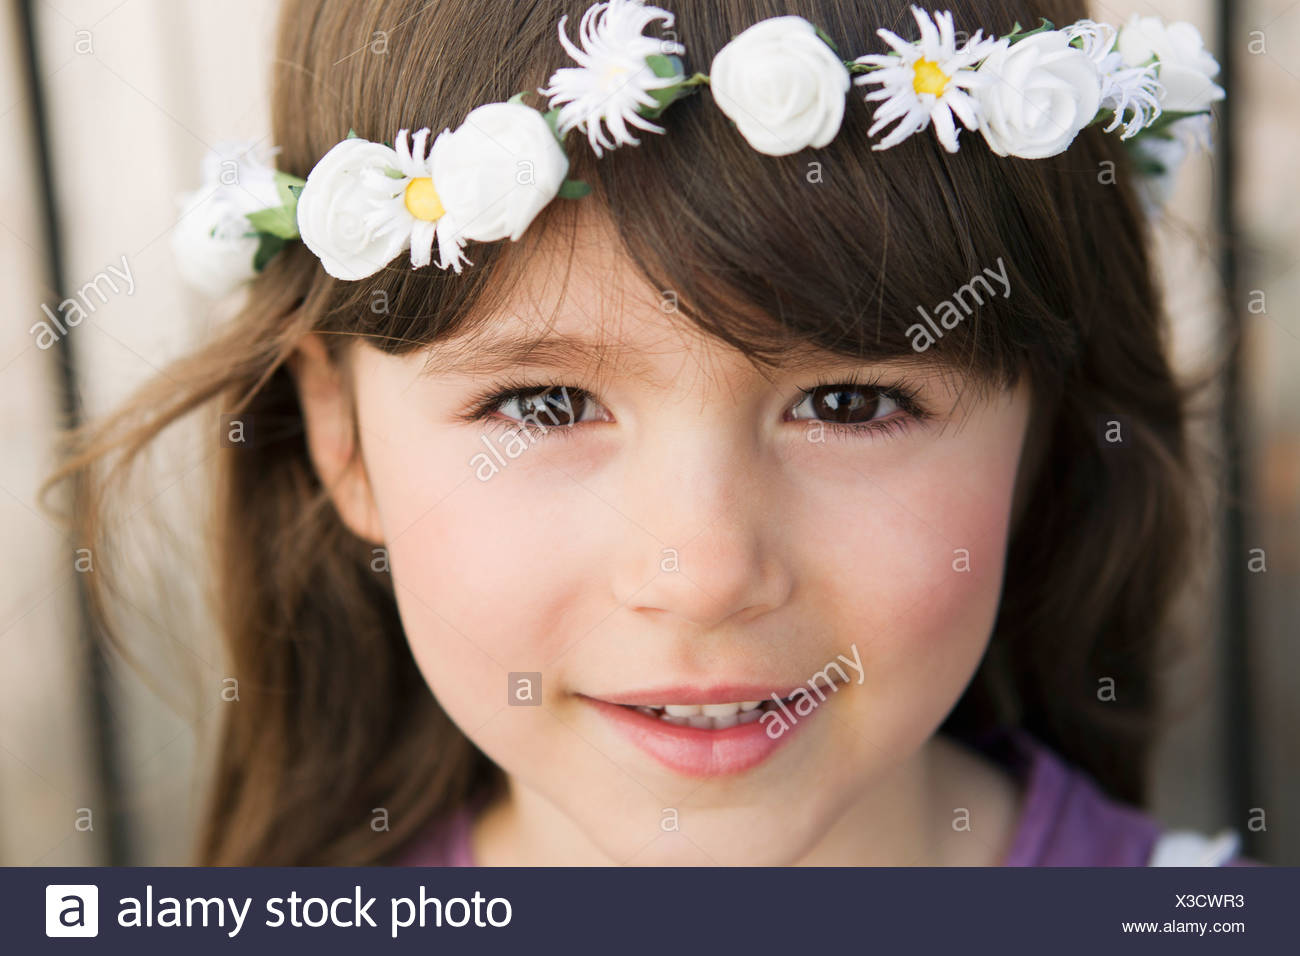 9bdd03b65d Flower Crown Girl Stock Photos   Flower Crown Girl Stock Images - Alamy